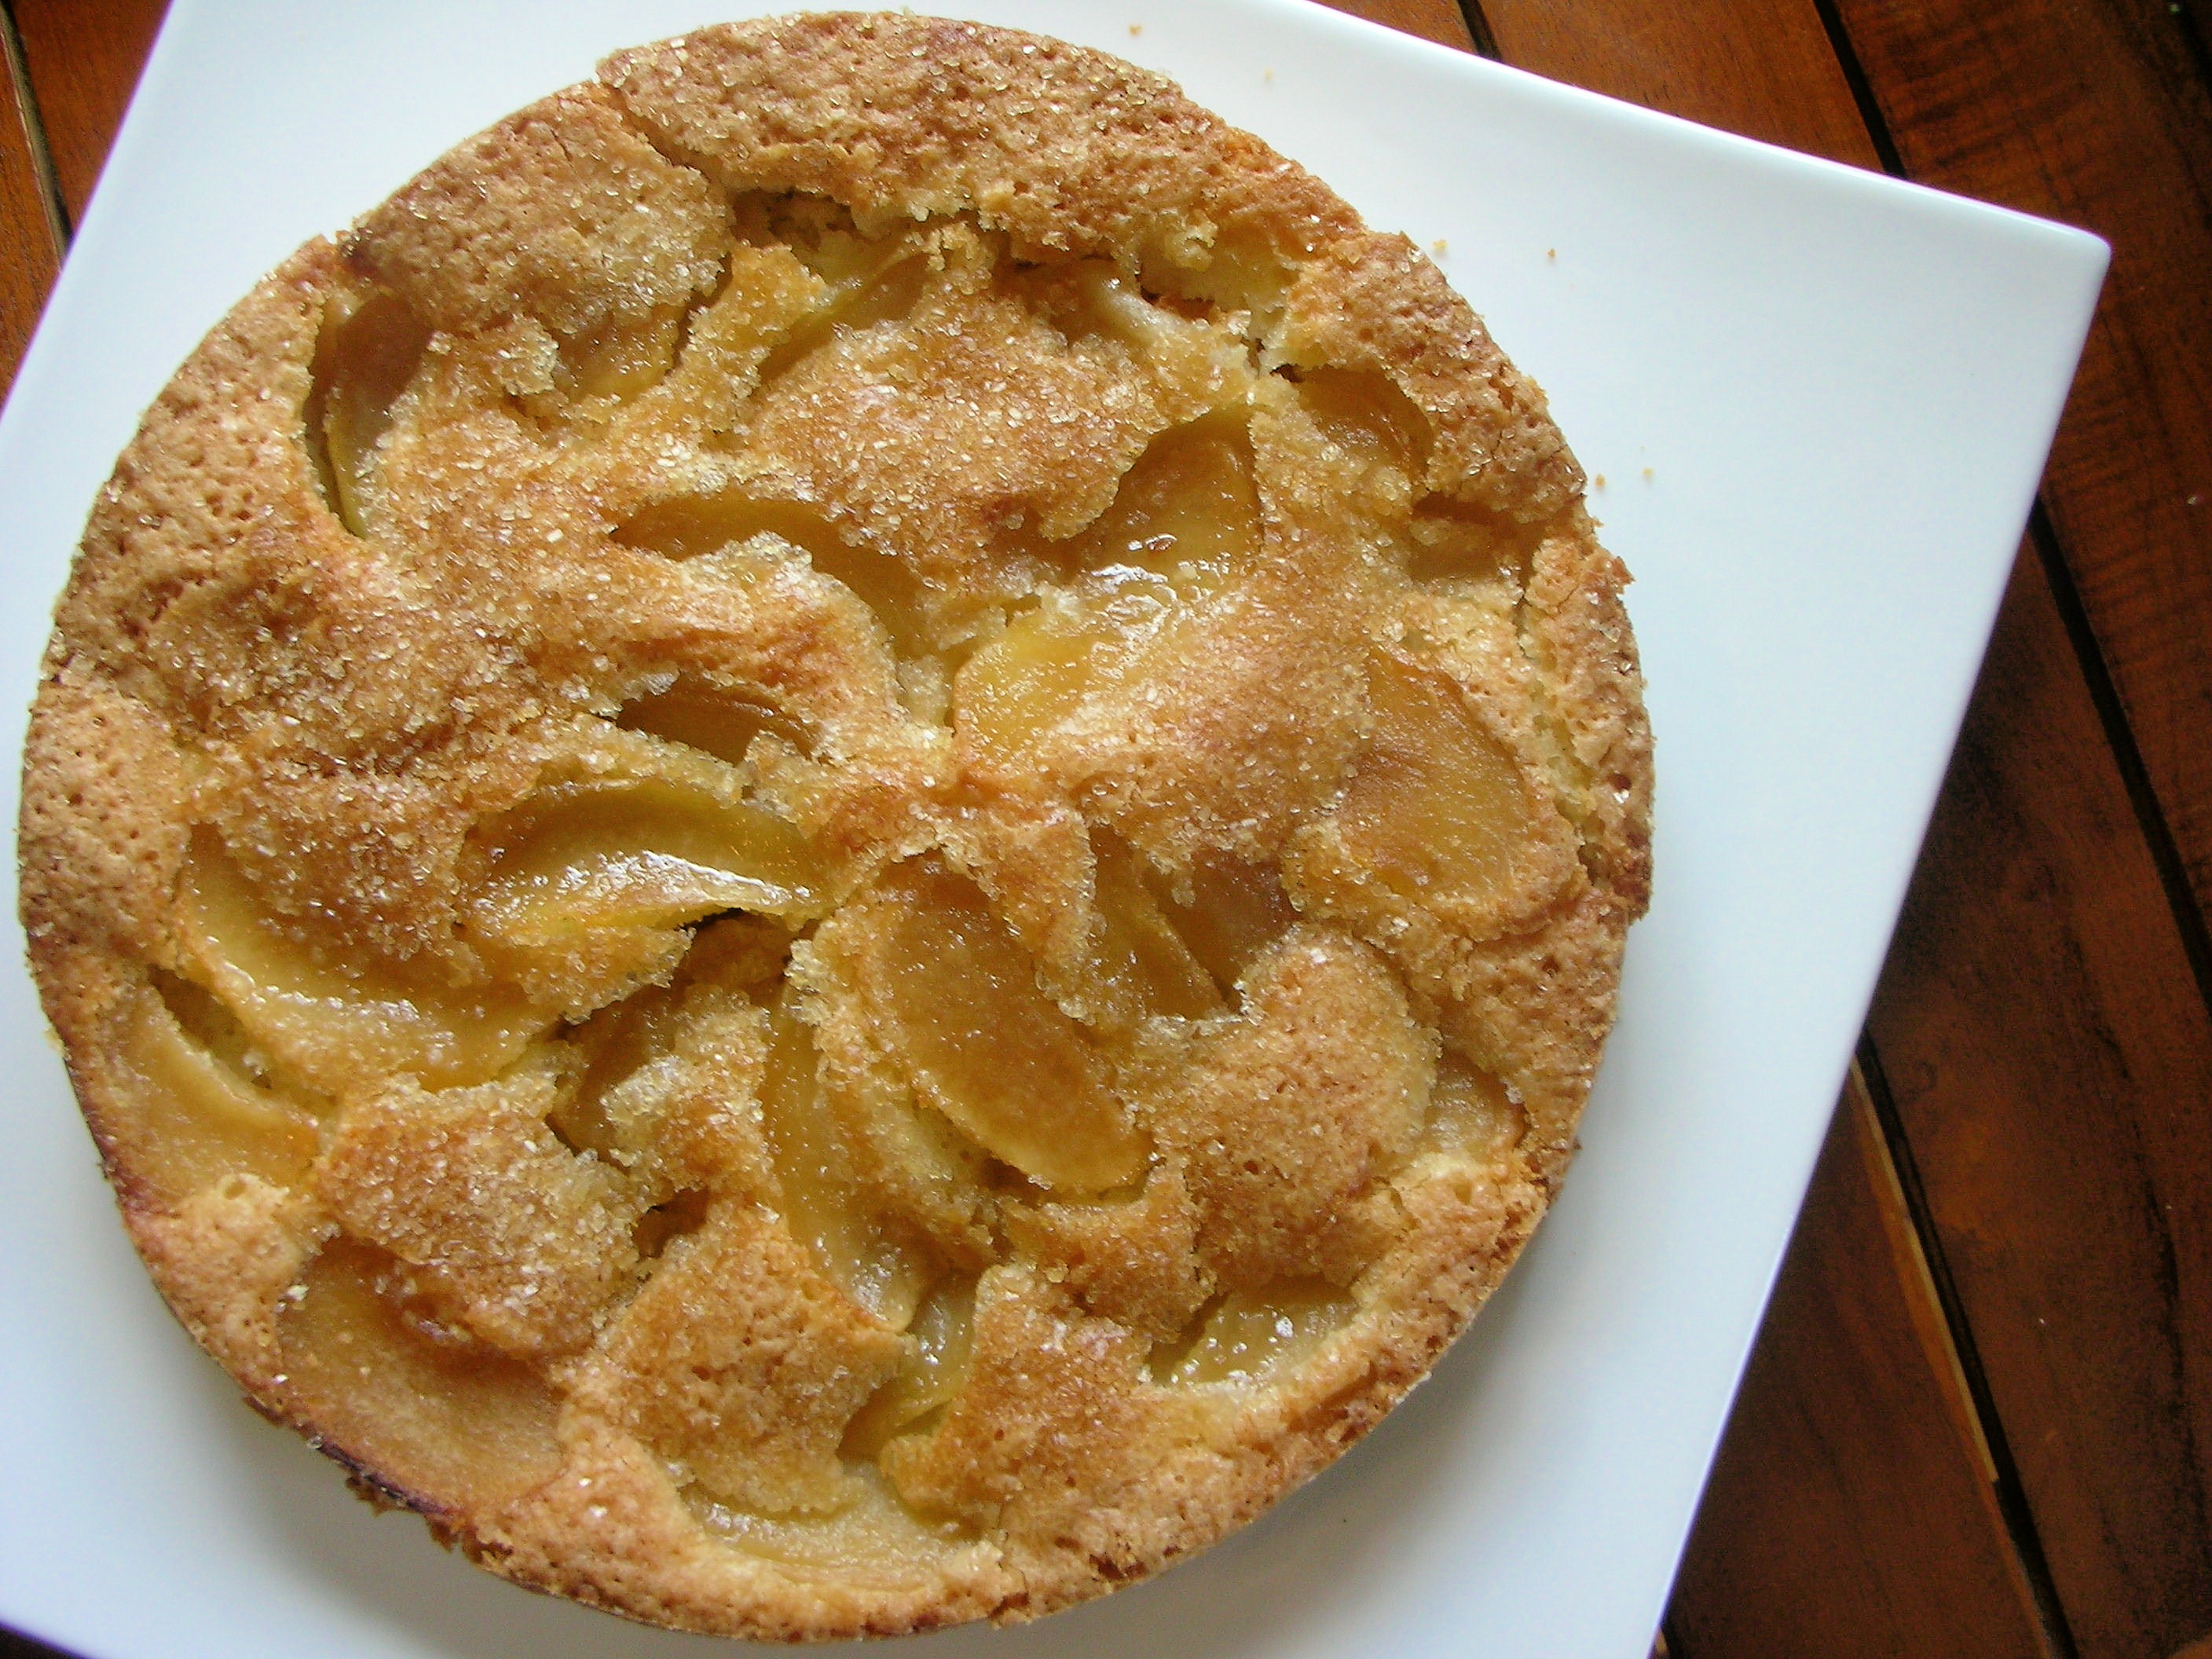 Best Apples For Coffee Cake